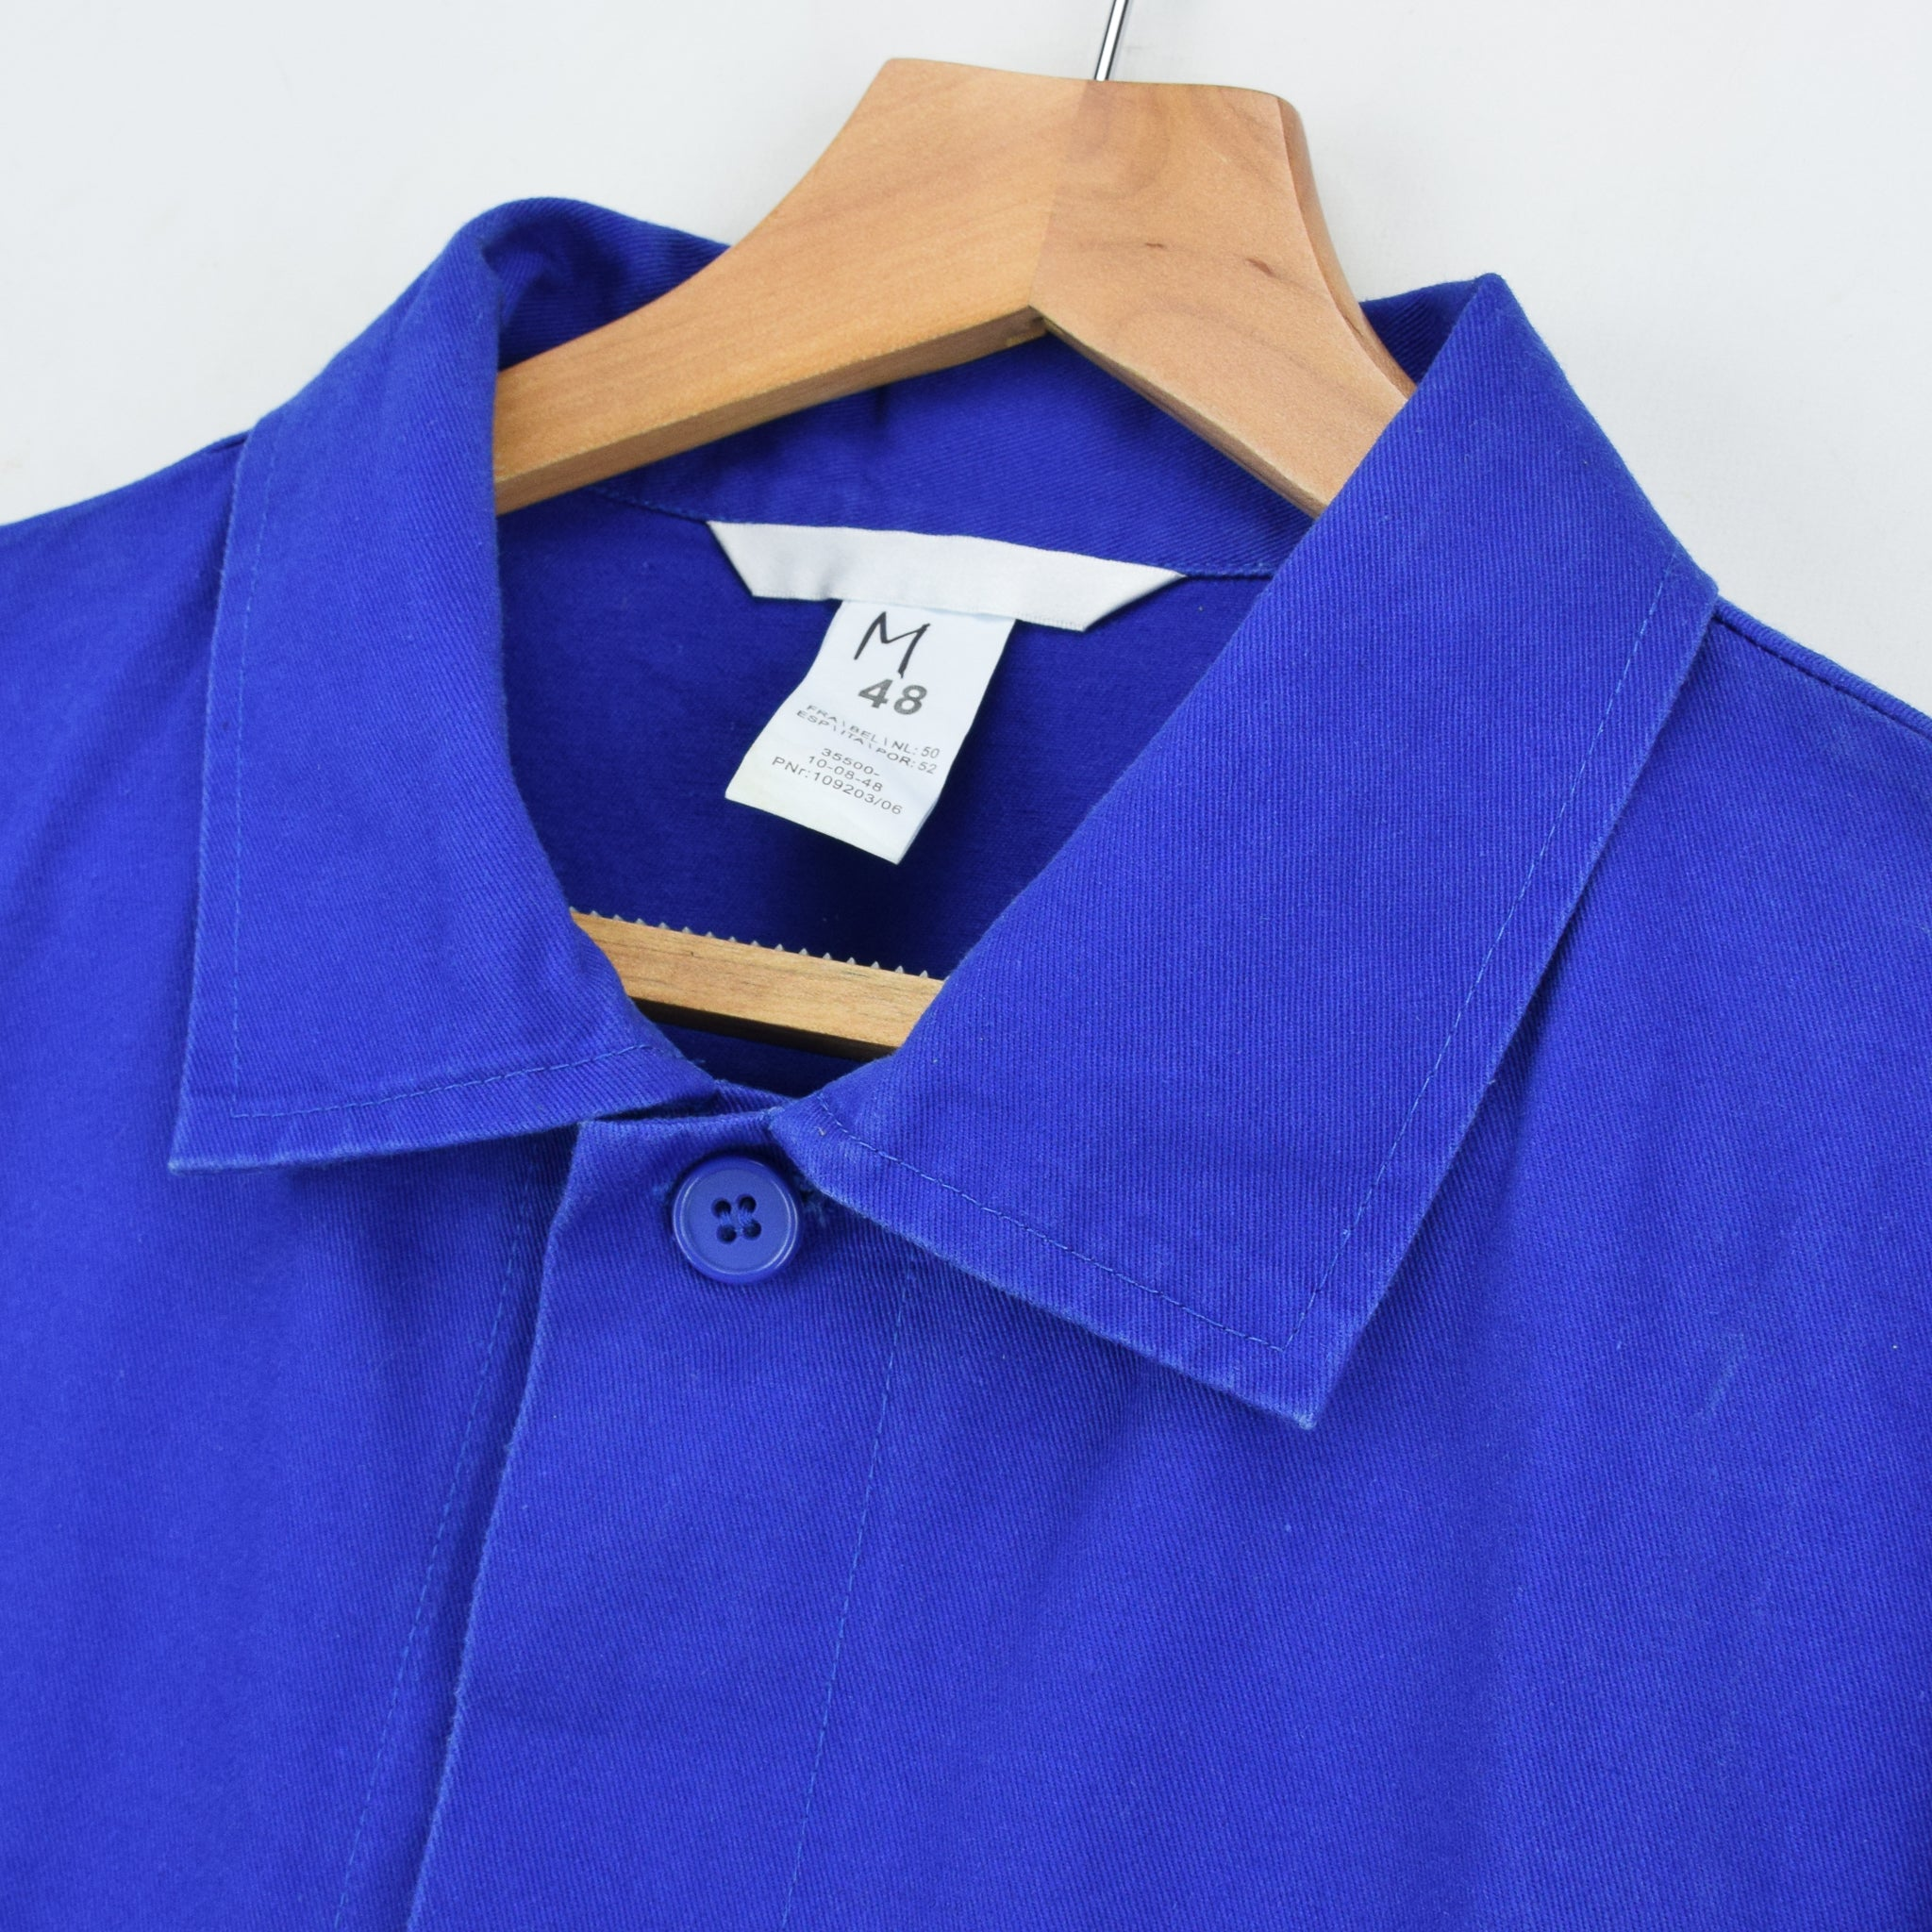 Vintage Bright Blue French Style Worker Sanforized Chore Shirt Jacket M / L collar